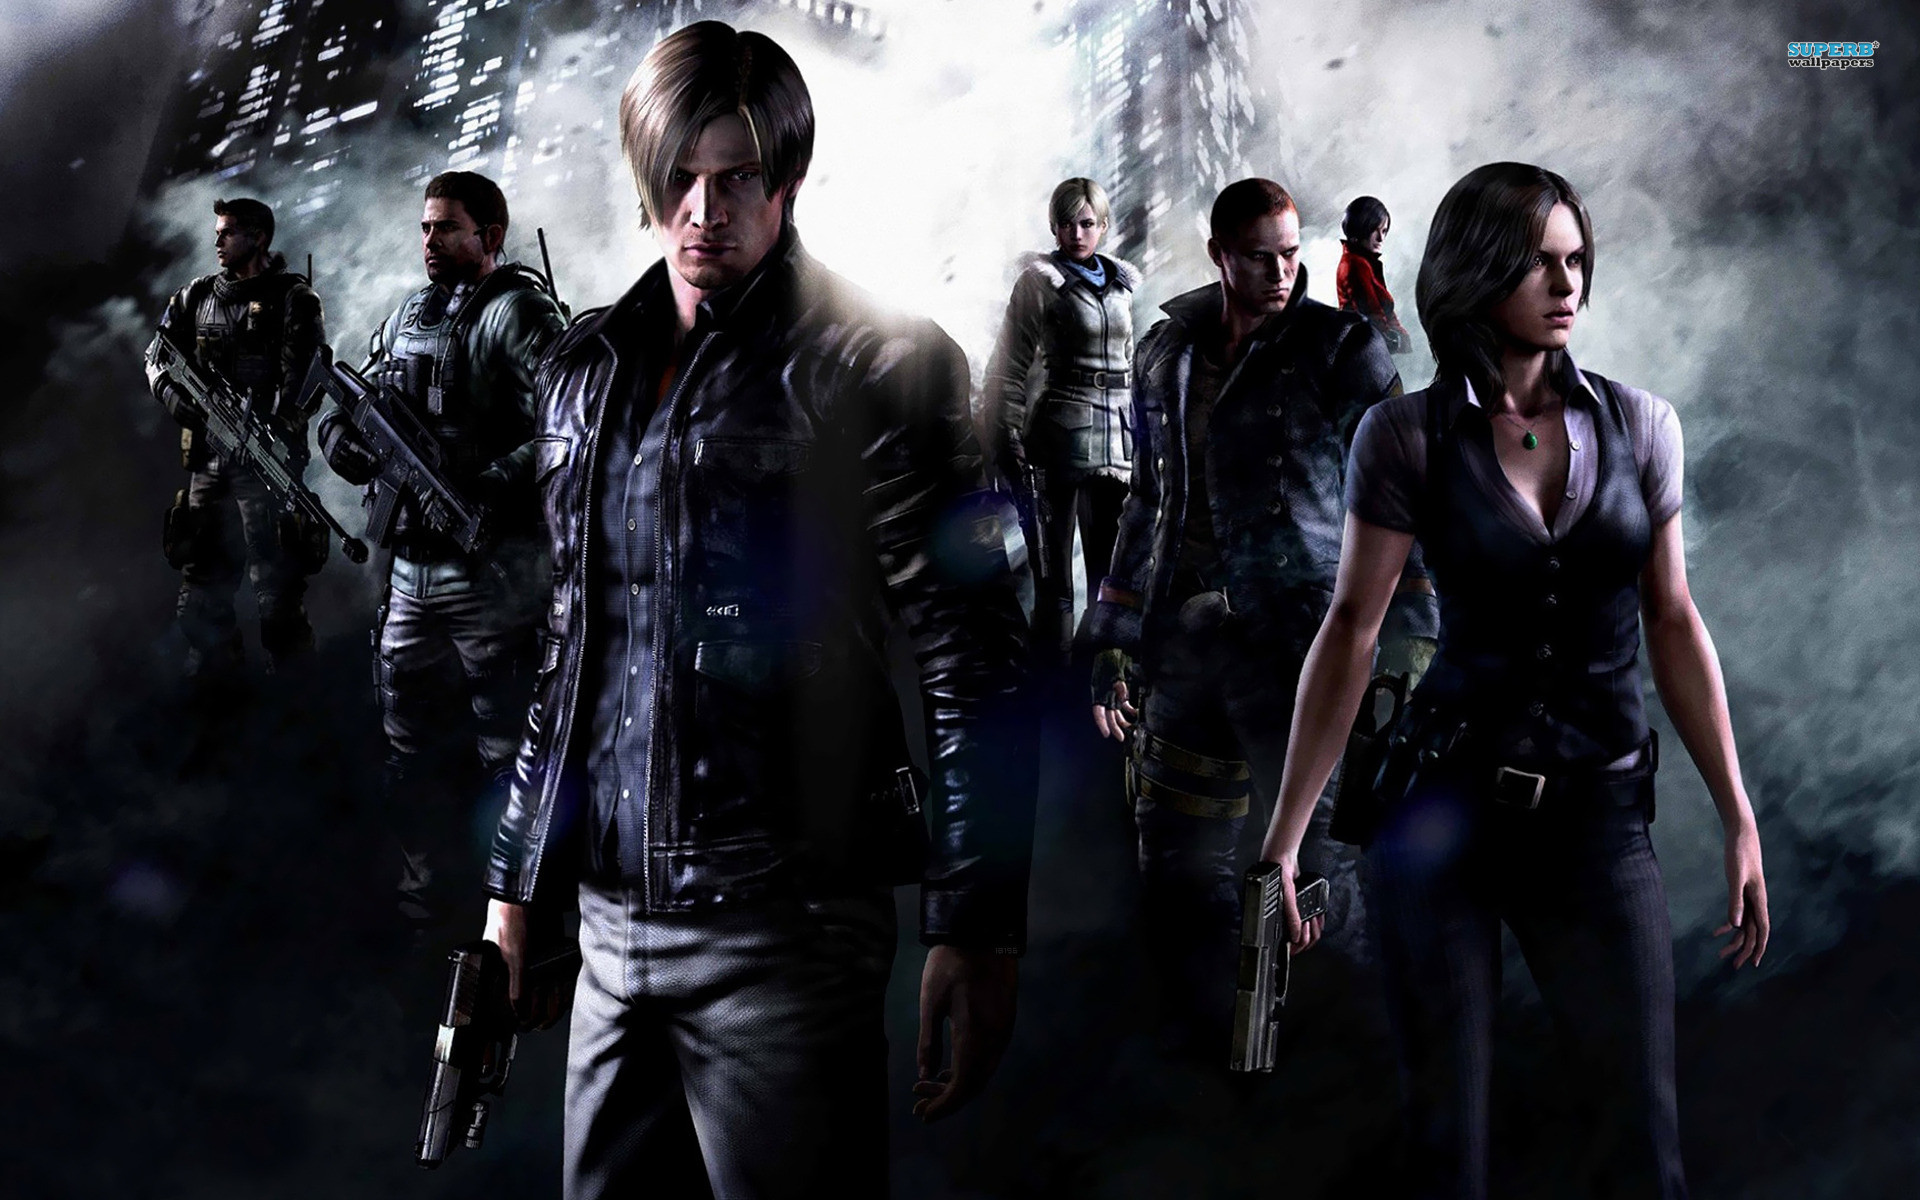 1920x1200 137 best Resident Evil HD Wallpapers images on Pinterest | Resident evil,  Umbrella corporation and Zombies